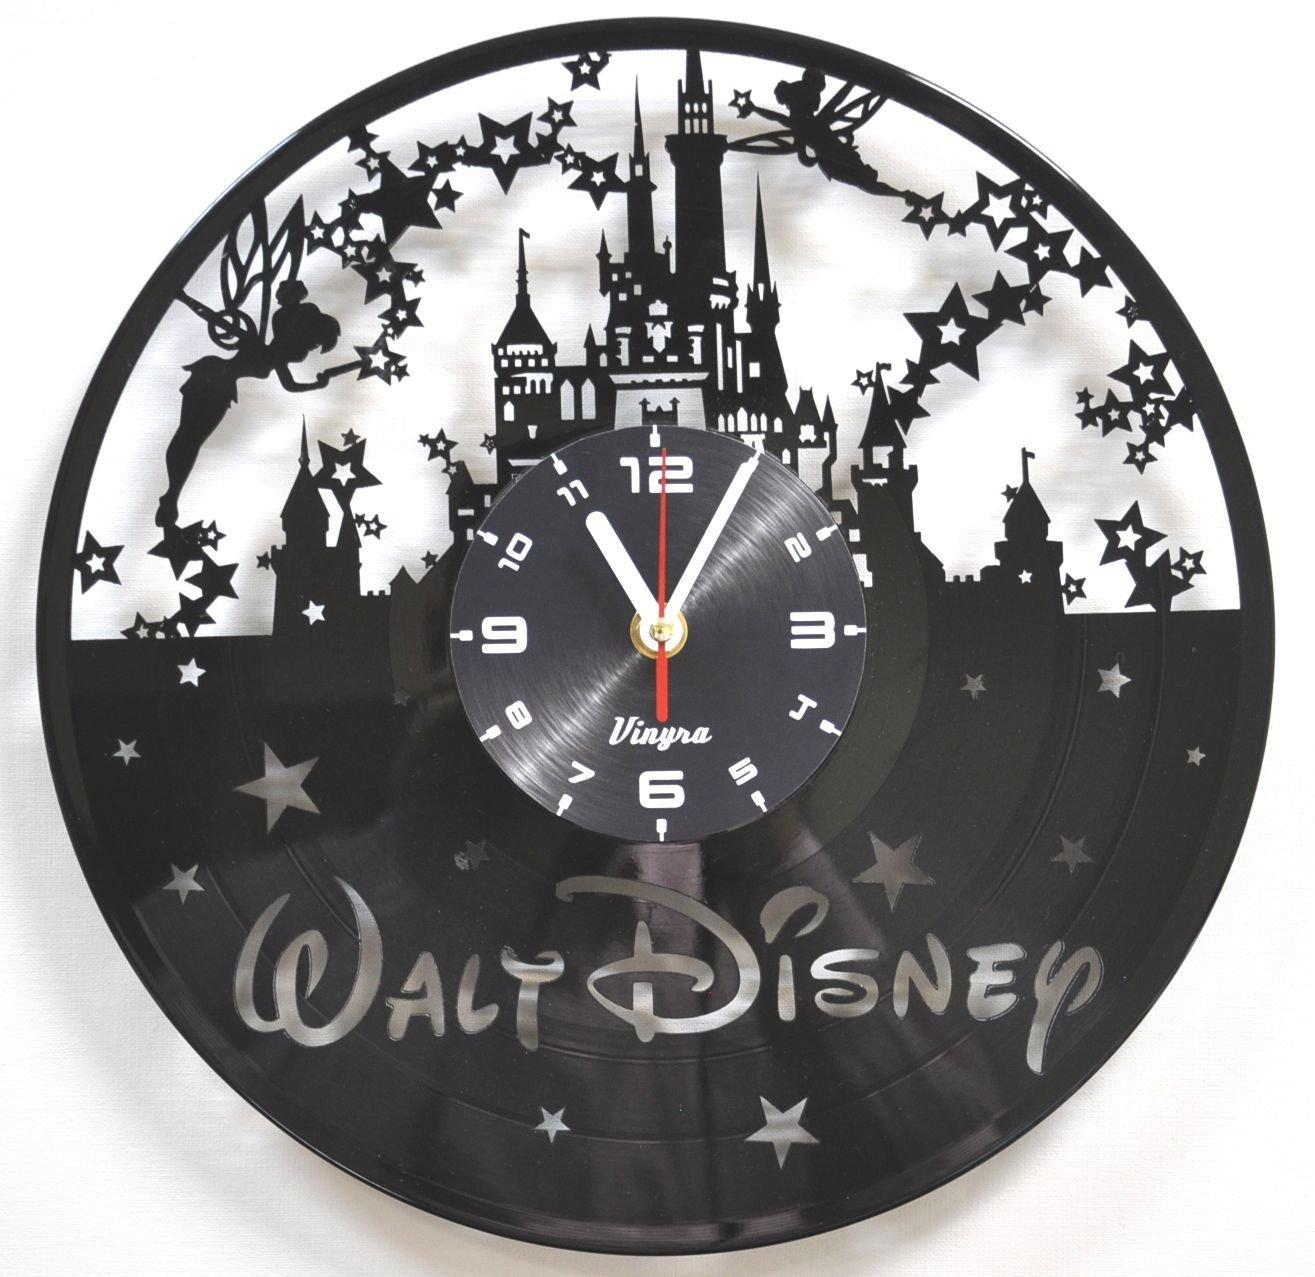 Vinyl wall clock art kids gift laser cut record clock kids room see larger image amipublicfo Gallery